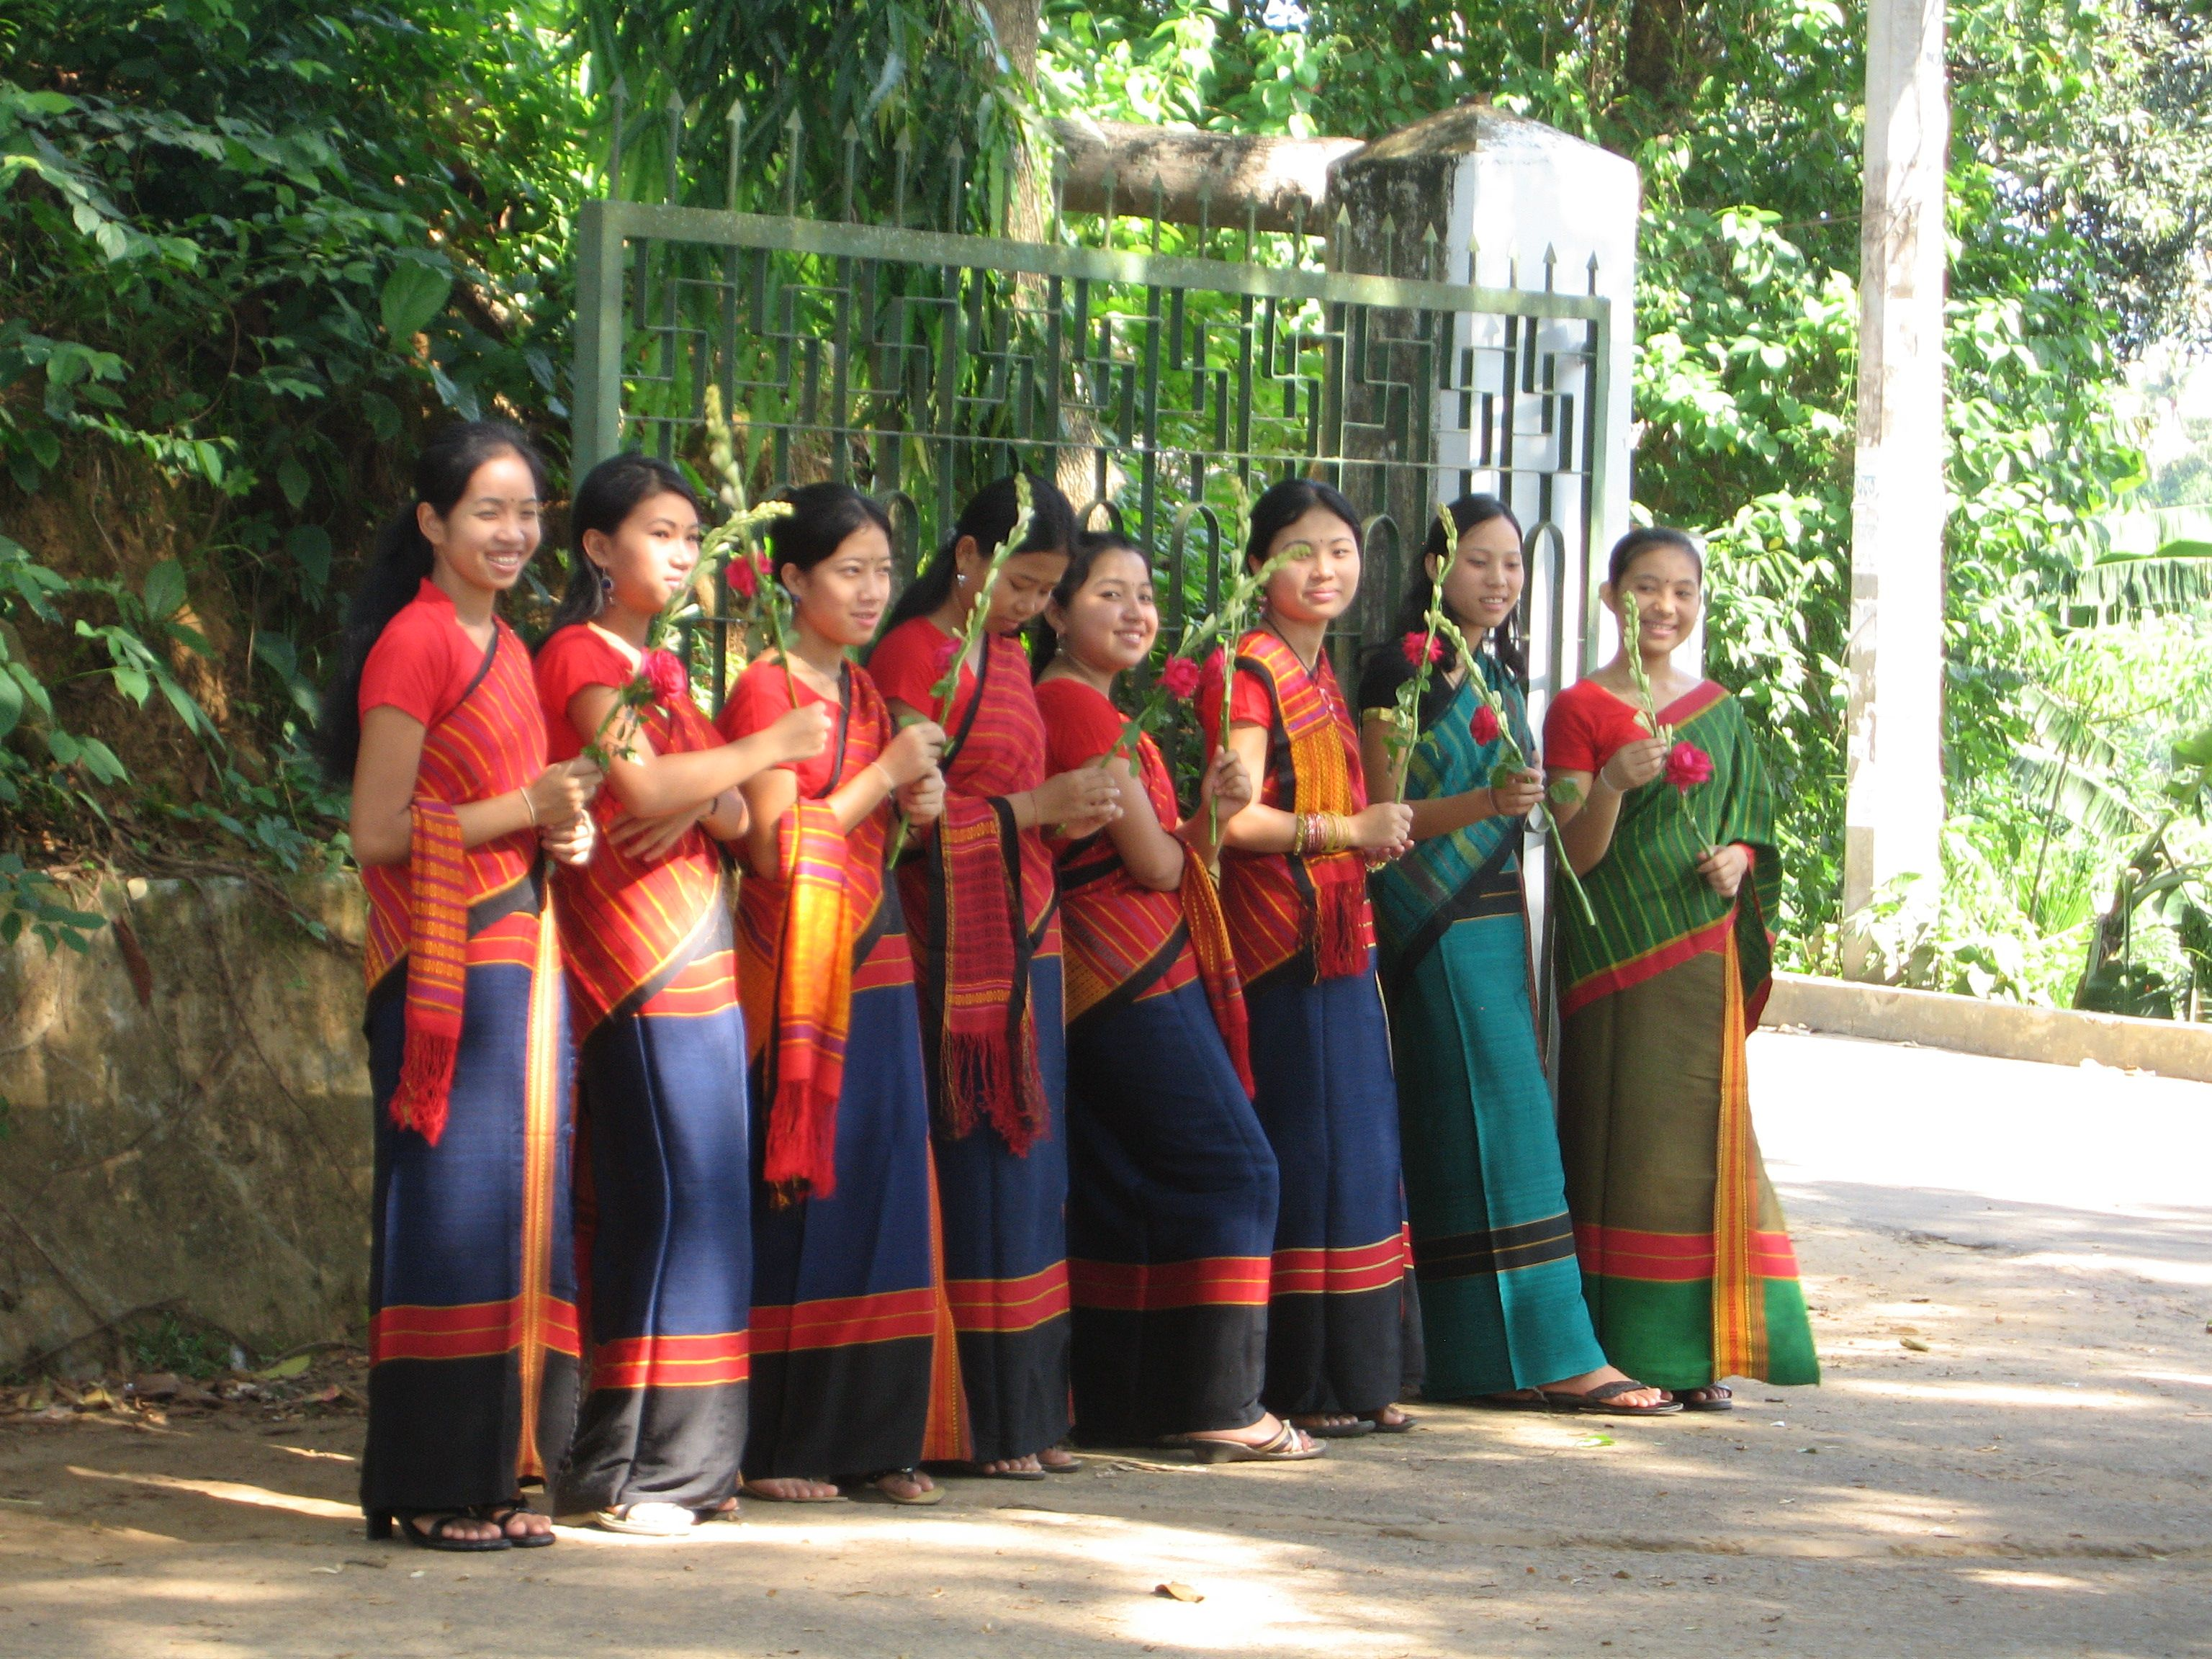 Schoolgirls in Chakma dress ready to welcome guests.  The Chakmas are a community that inhabits North-East India.  Chakmas are divided into 46 clans or Gozas. Chakmas have their own language, customs and culture, and profess religion, Theravada Buddhism.  Chakmas are Tibeto-Burman, and are thus closely related to tribes in the foothills of the Himalayas.